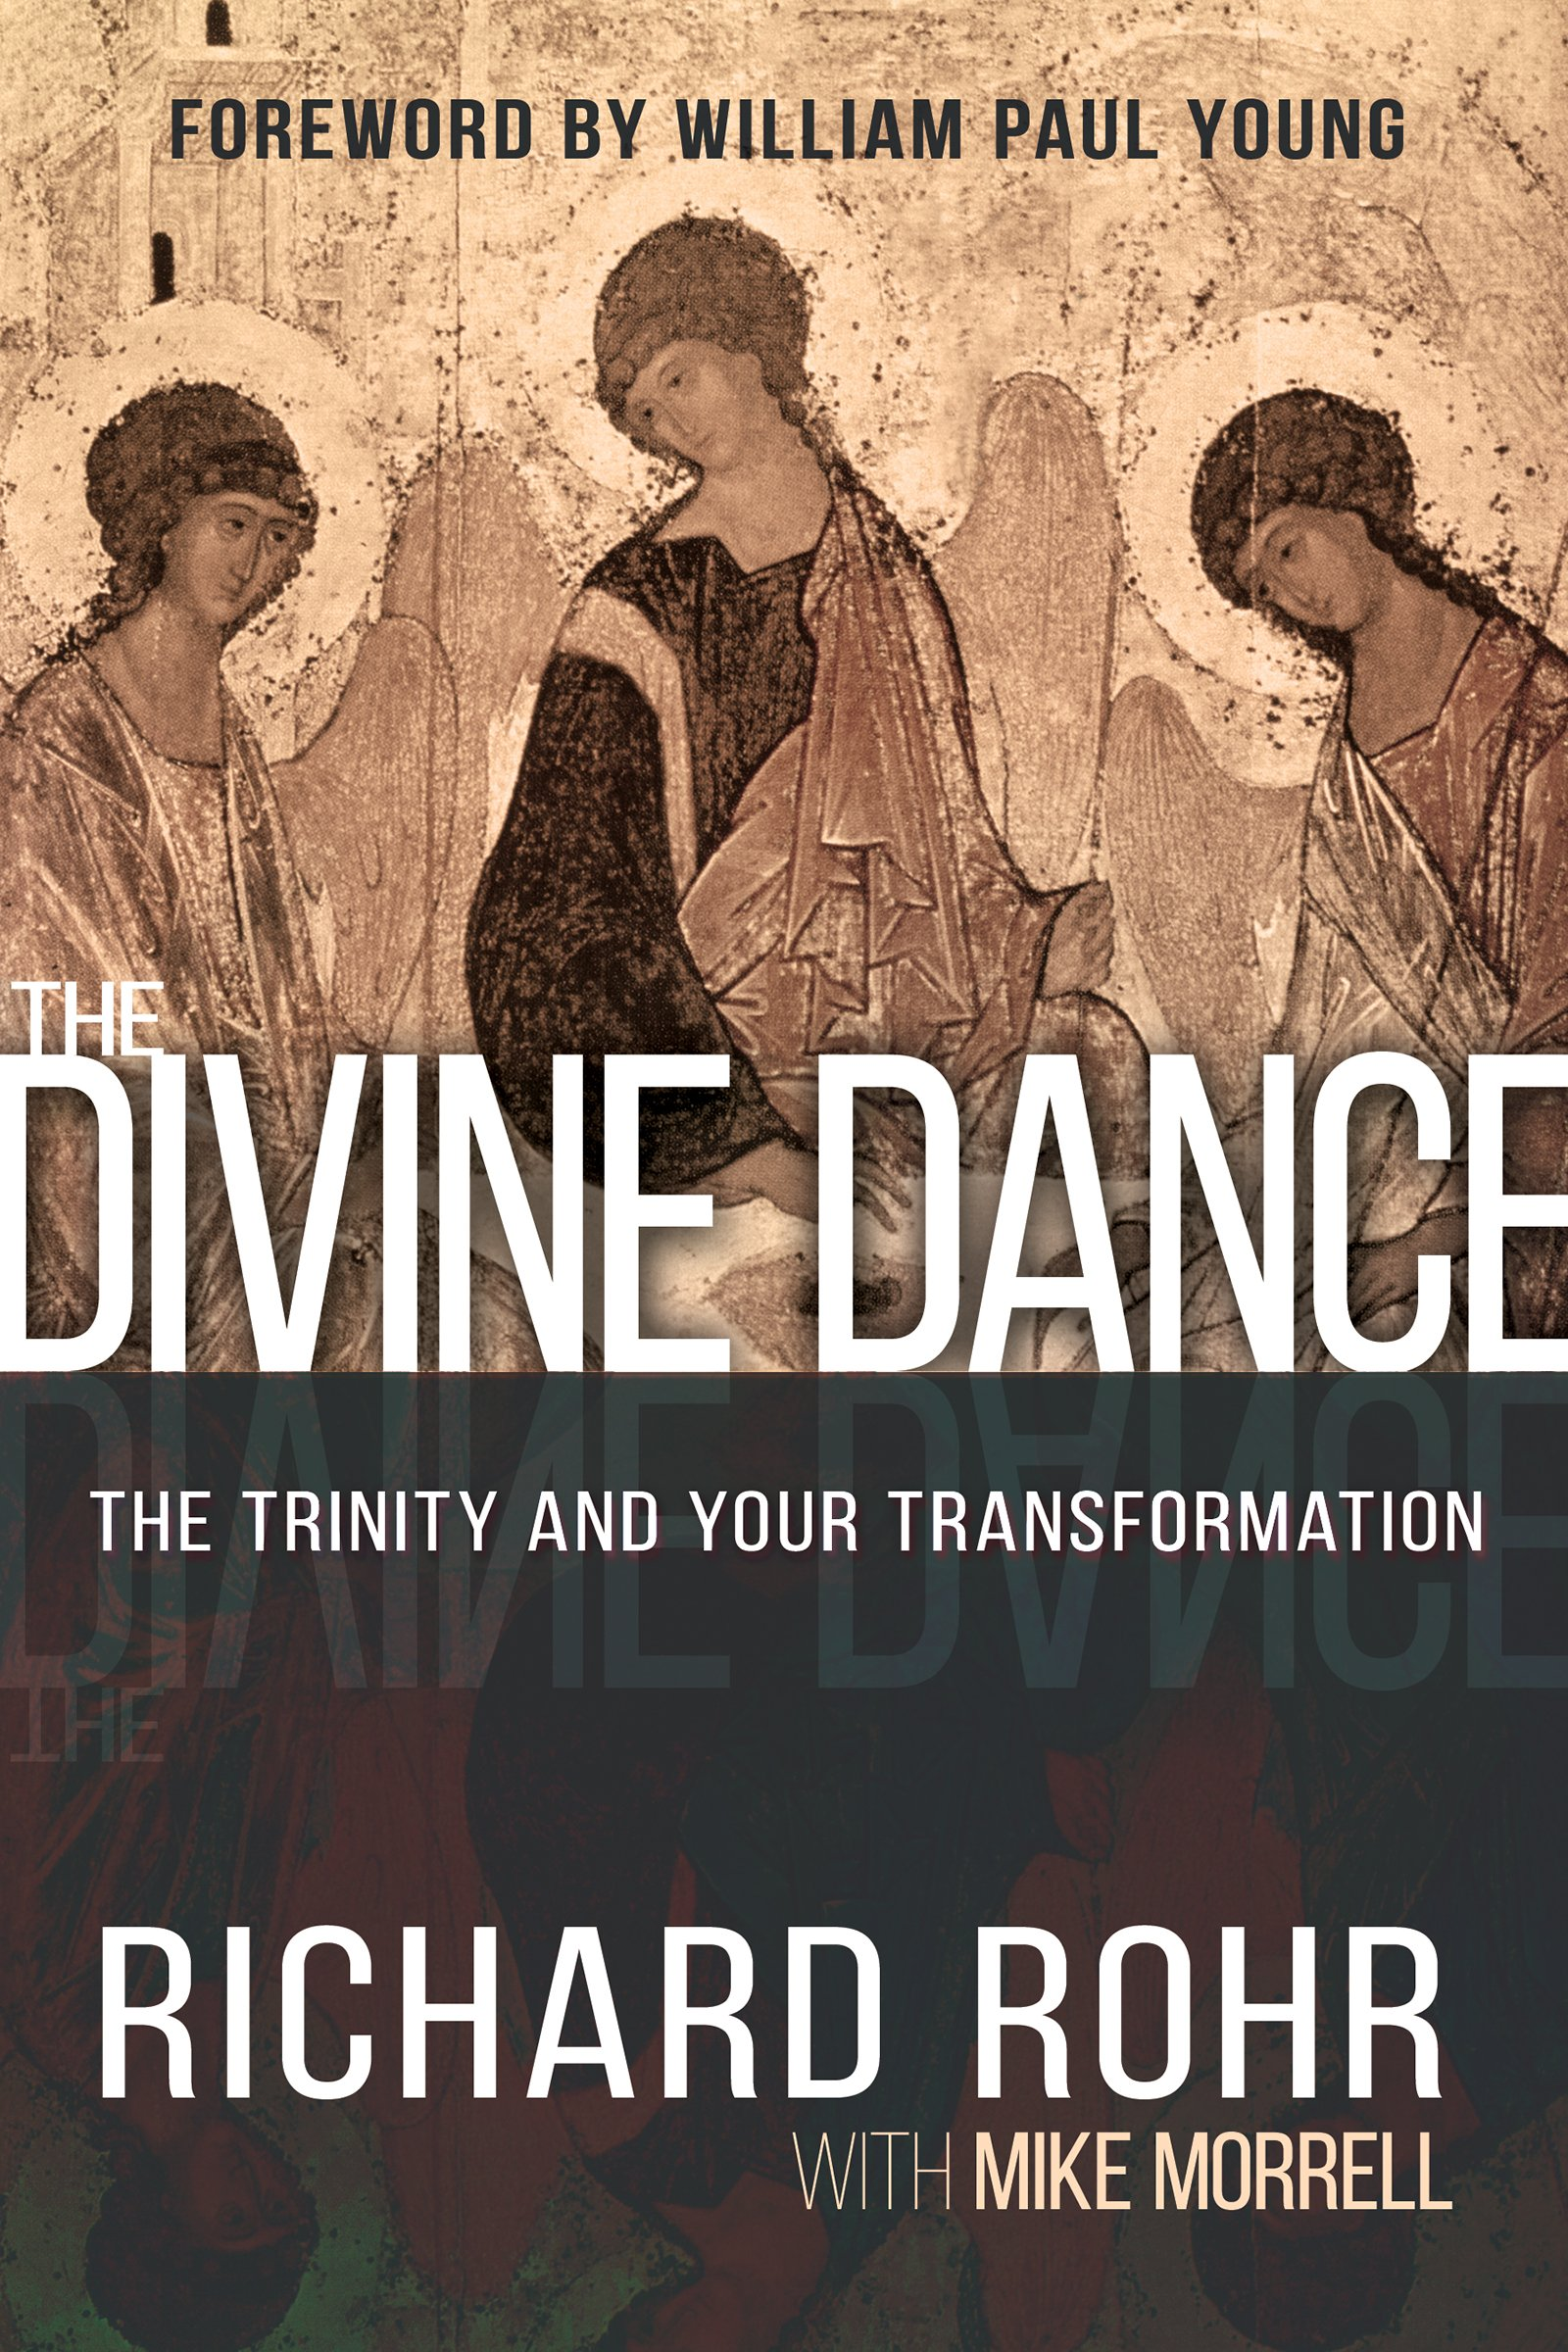 The Divine Dance: The Trinity And Your Transformation: Richard Rohr, Mike  Morrell, William Paul Young: 9781629117294: Amazon: Books